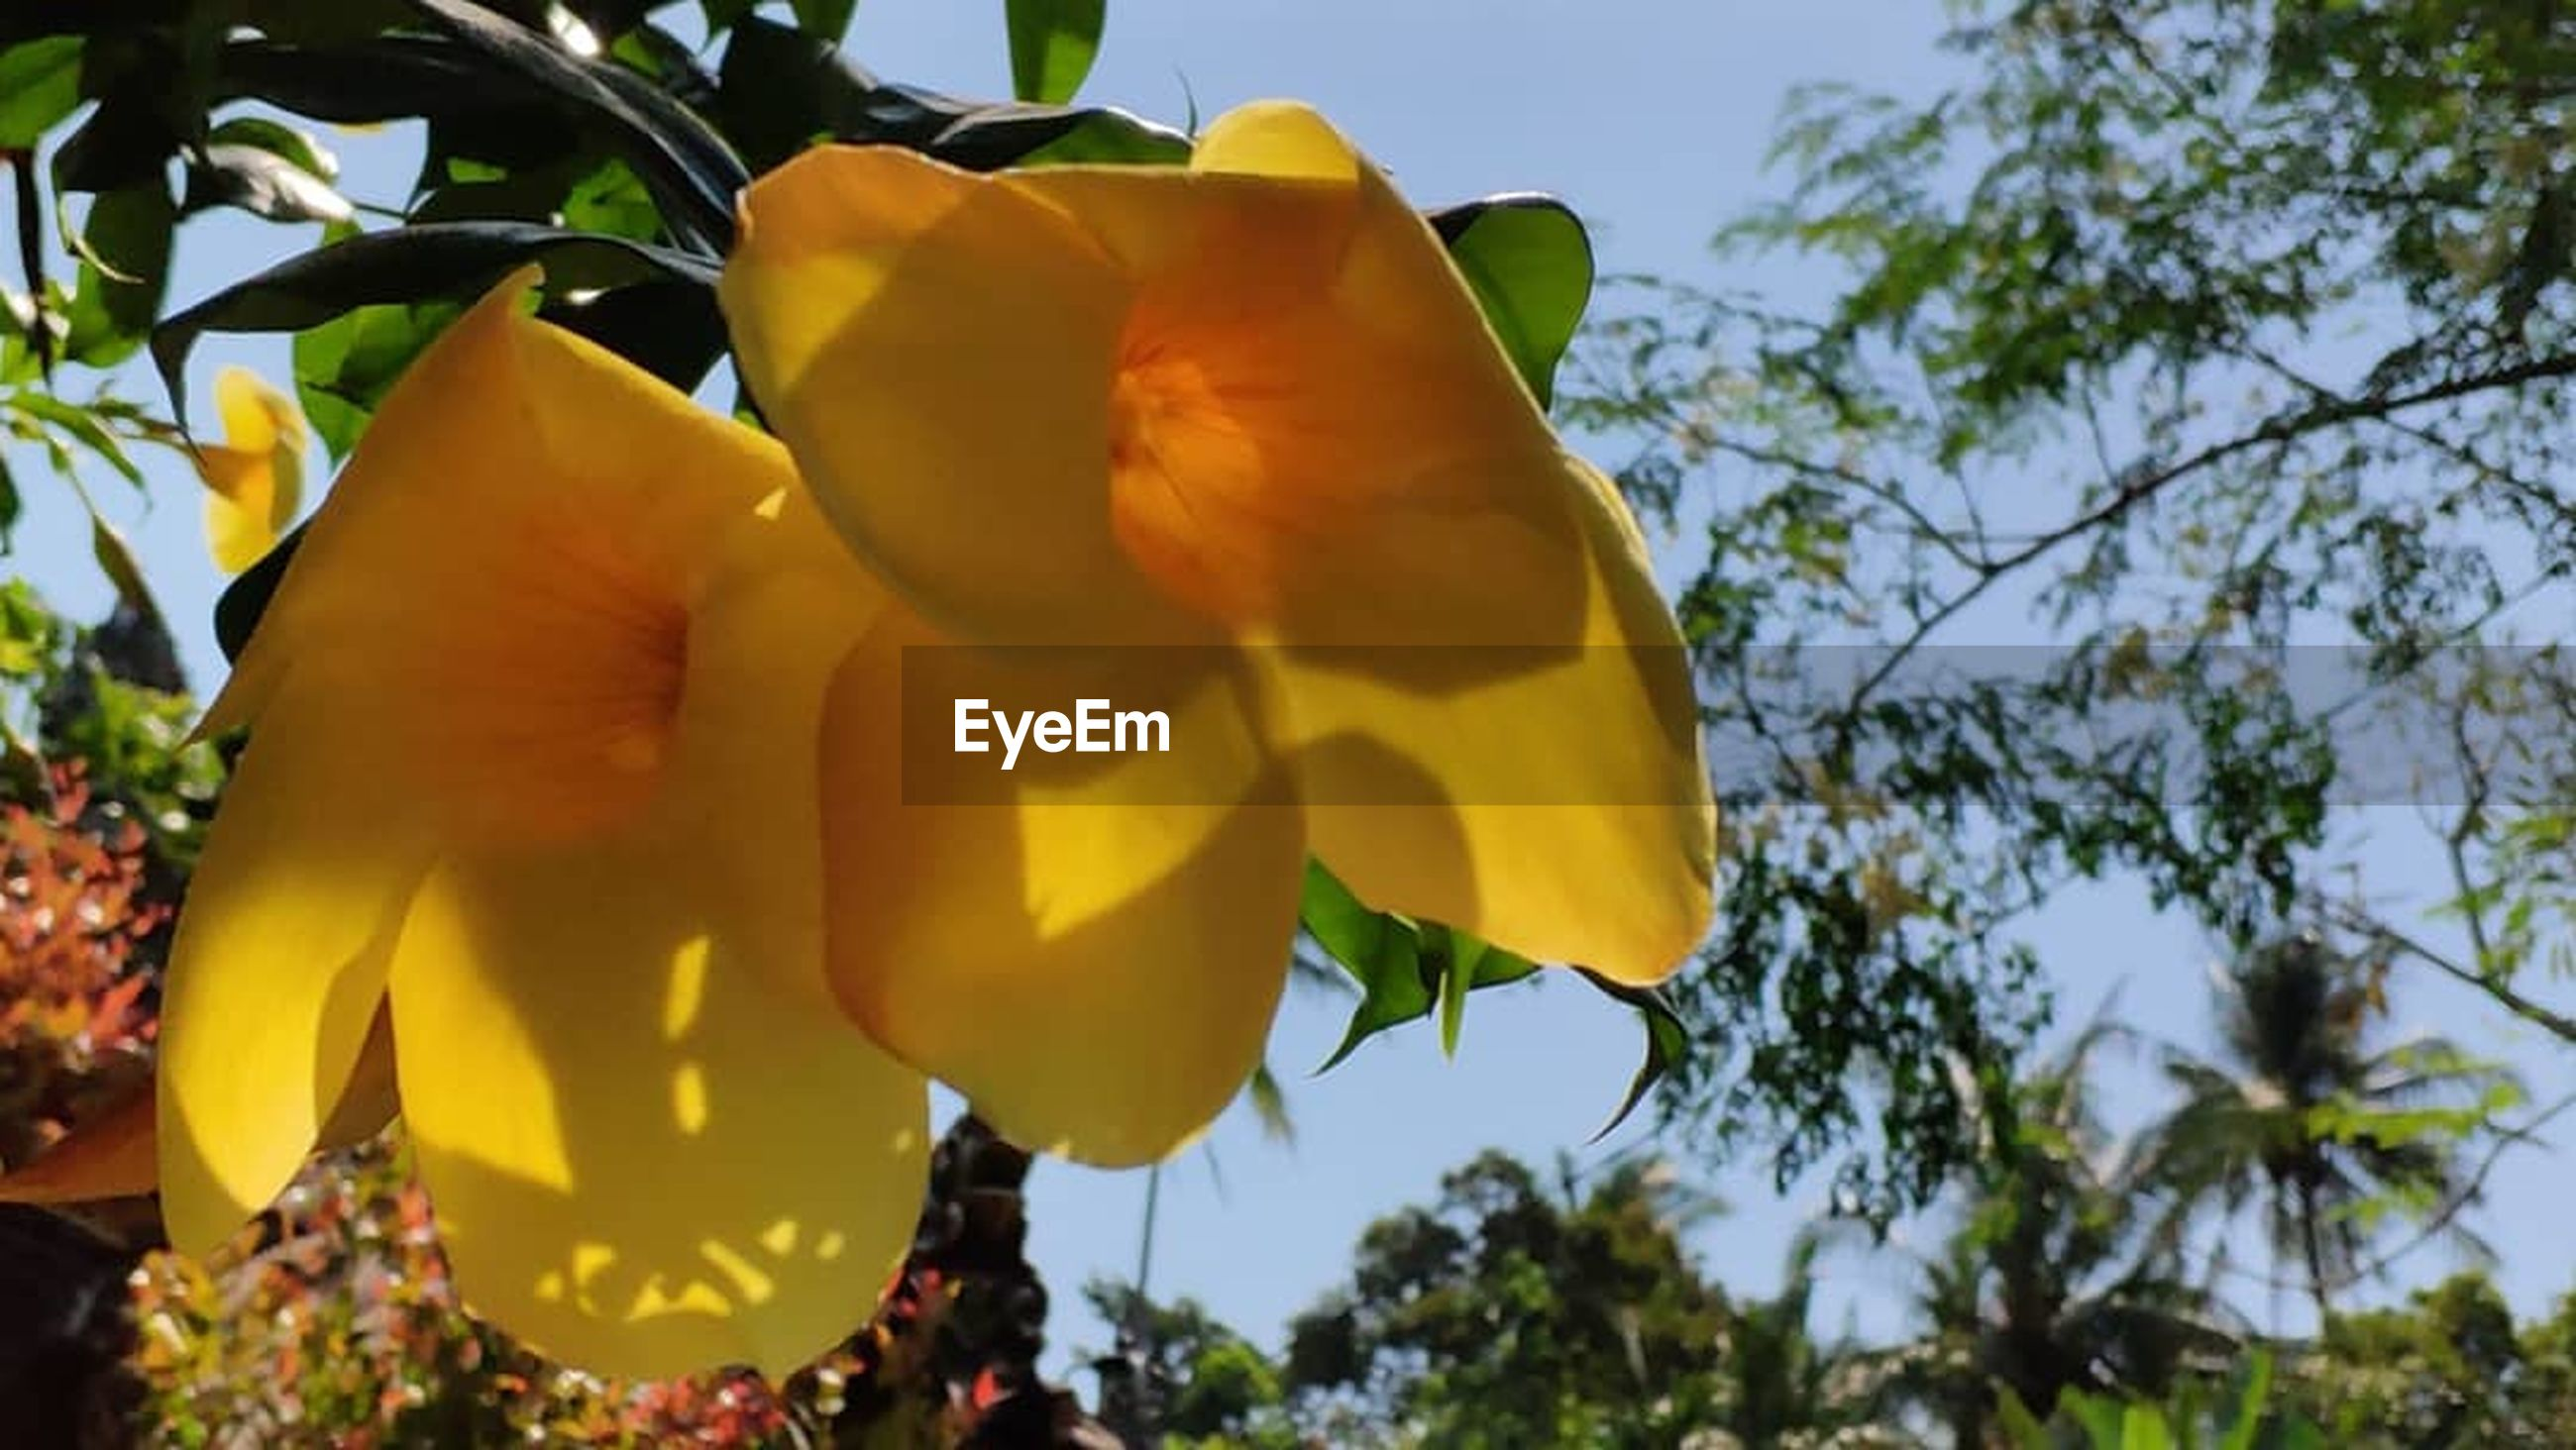 plant, flowering plant, beauty in nature, flower, growth, low angle view, nature, tree, petal, yellow, close-up, freshness, fragility, vulnerability, flower head, inflorescence, day, sky, no people, focus on foreground, outdoors